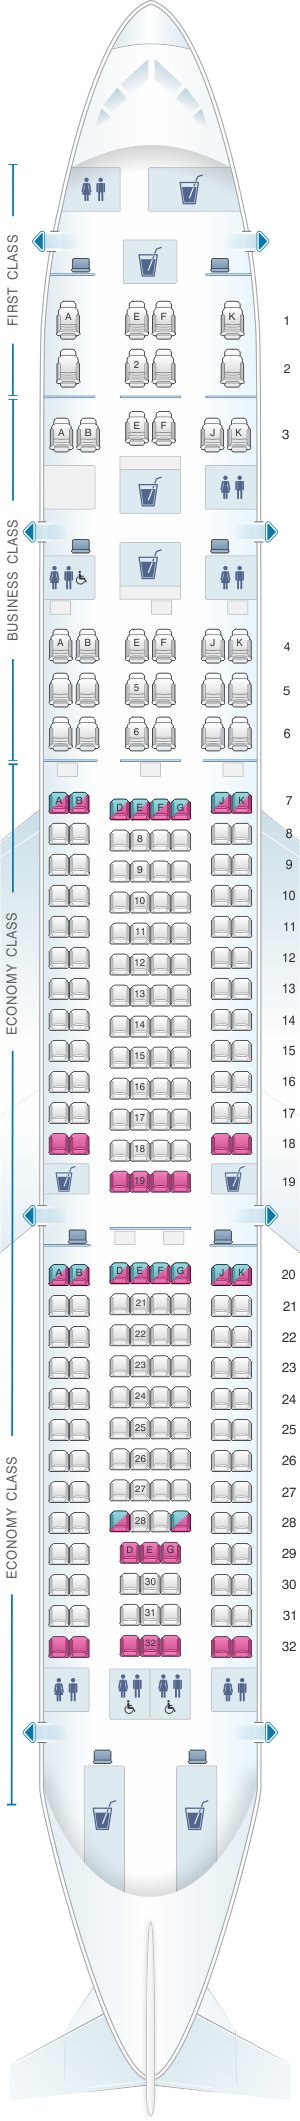 Seat map for Qatar Airways Airbus A330 200 232pax